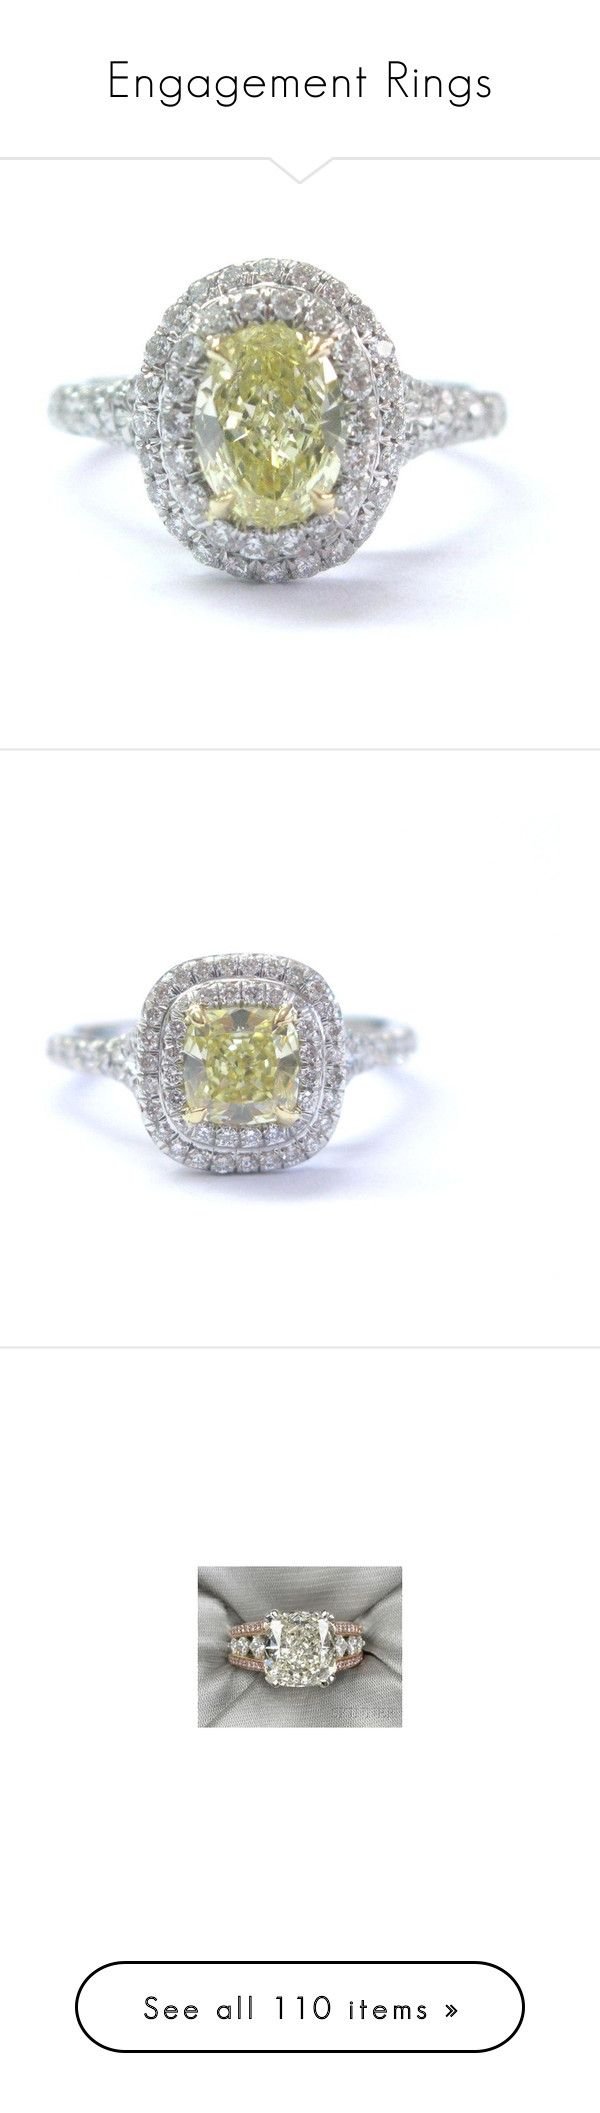 engagement rings by nikki usmc92 liked on polyvore featuring jewelry rings yellow diamond rings preowned wedding rings yellow diamond engagement - Preowned Wedding Rings